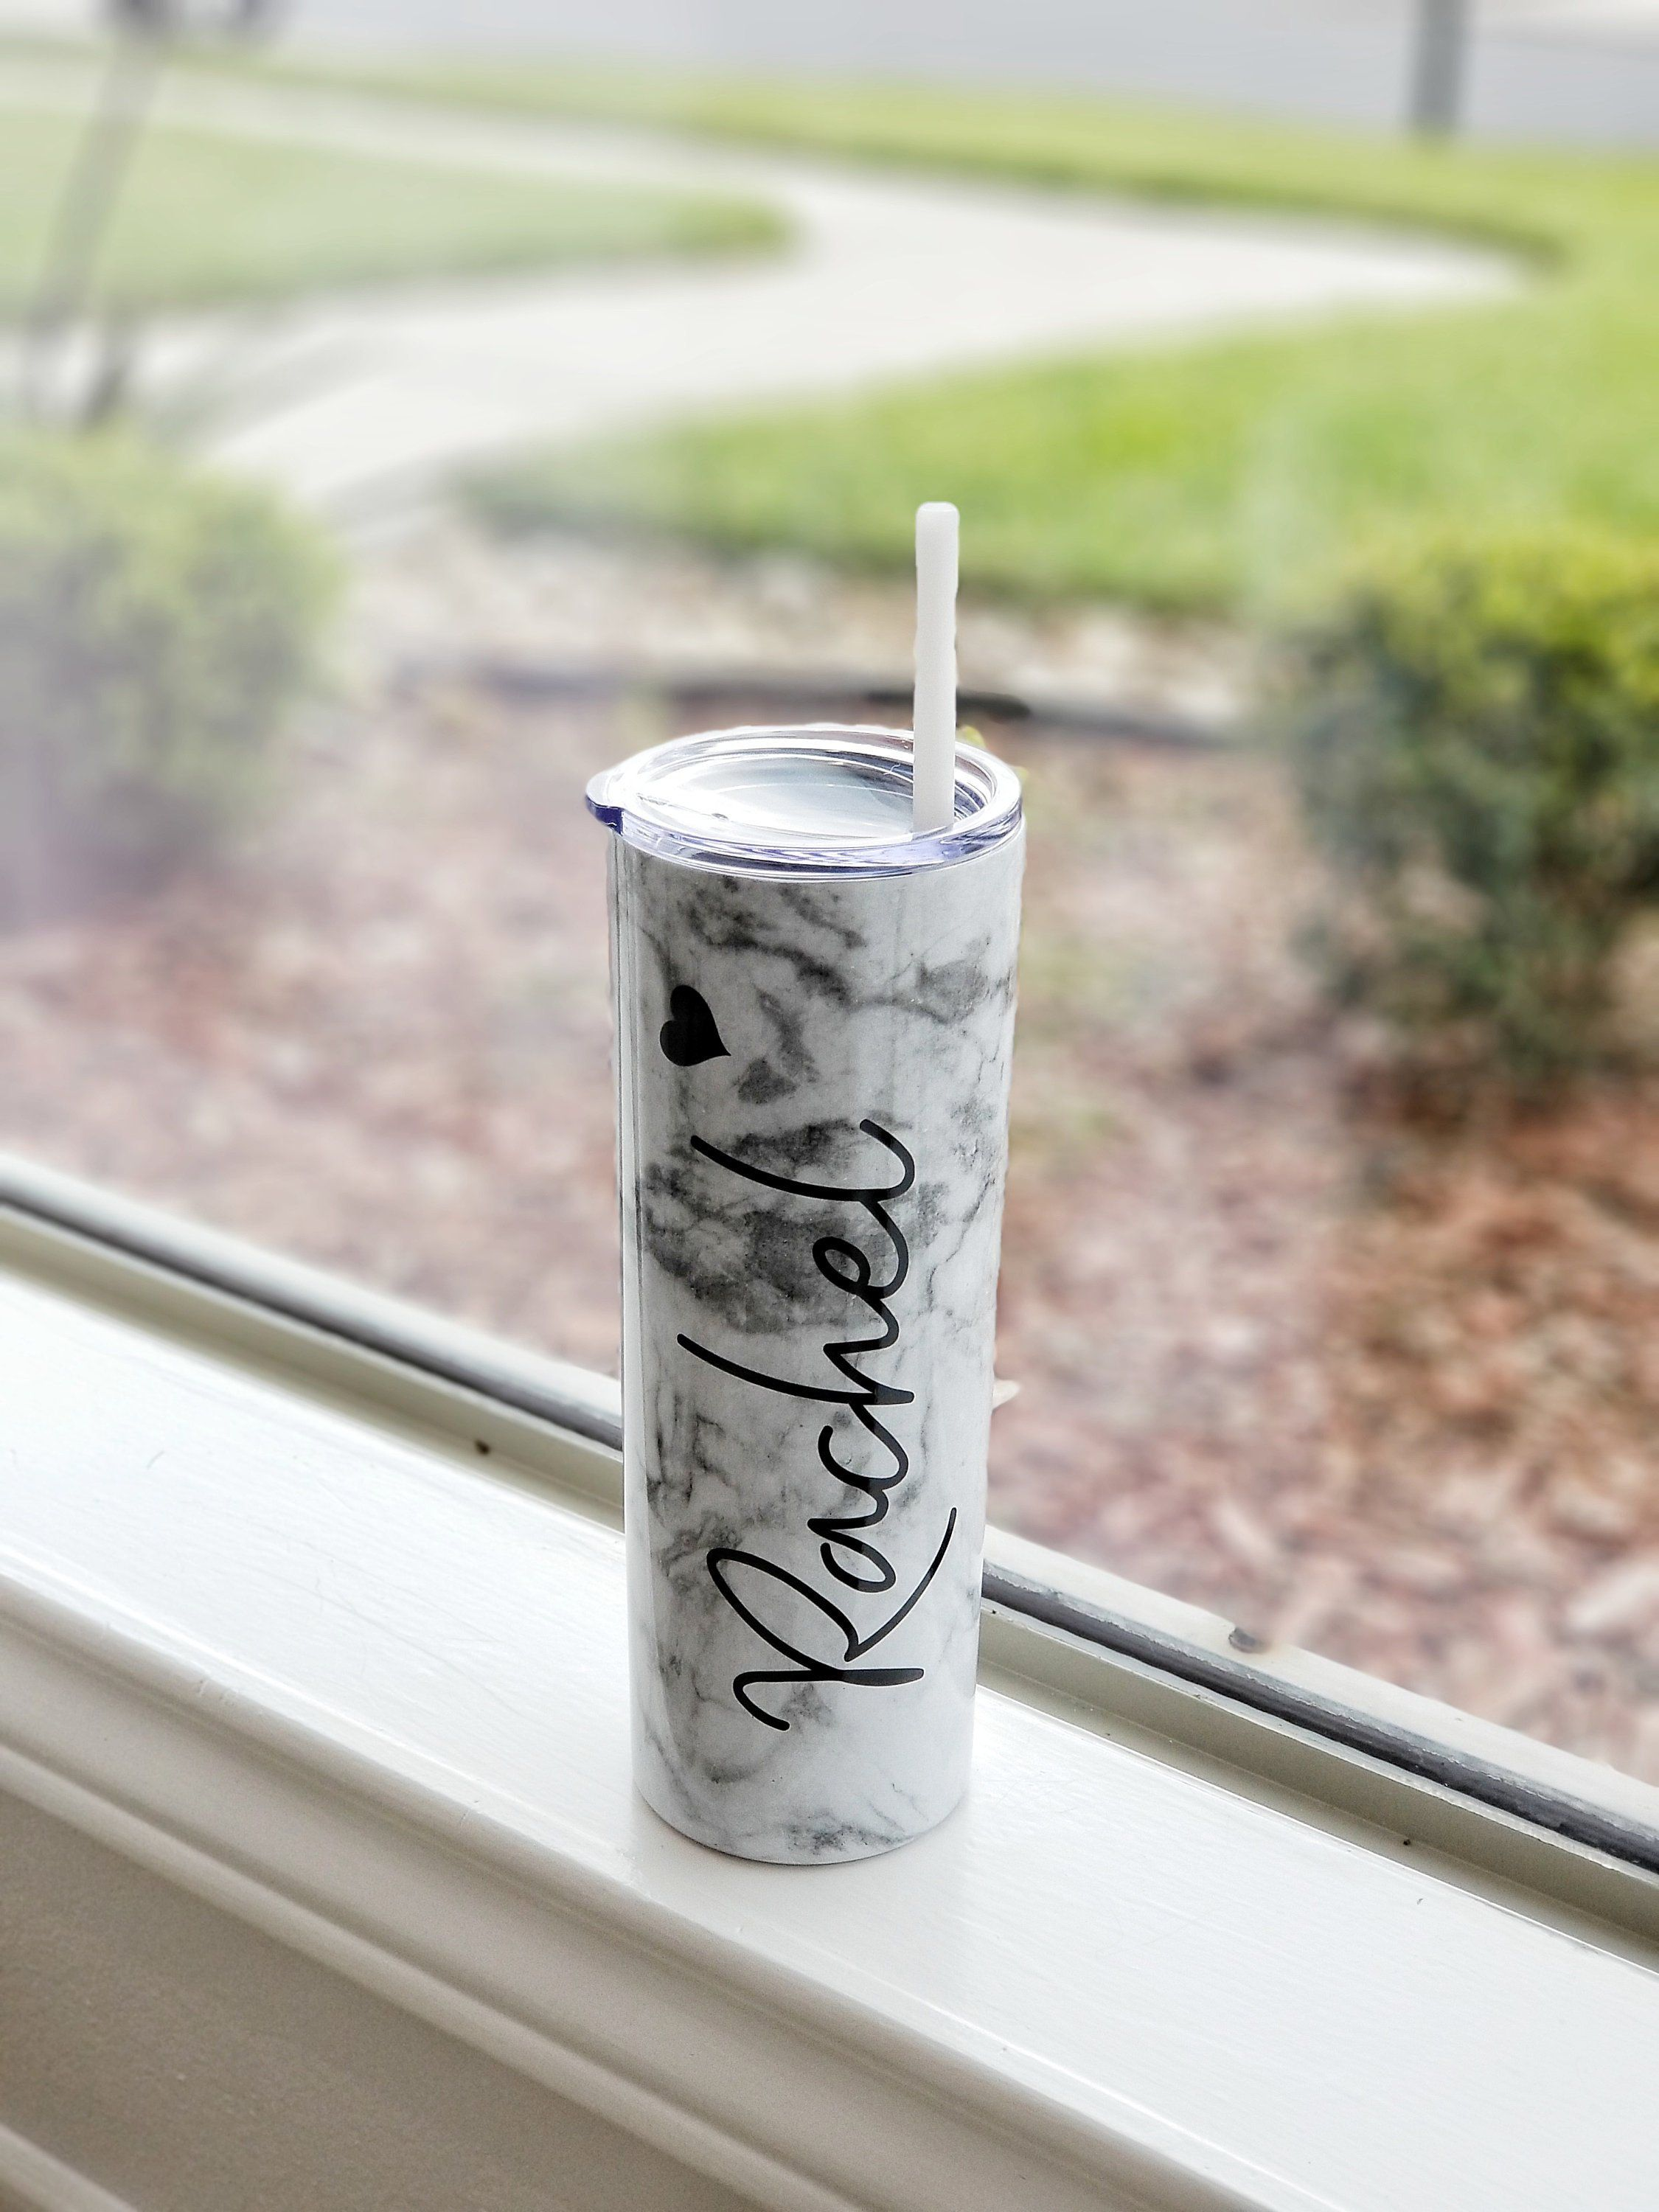 b6dccb233a8 Bridesmaid Tumbler- Bridal Party Gifts - Marble Tumbler-Bride Cup- Party  Favors- Rose gold tumbler- Maid of Honor Stainless Steel Tumbler - by ...